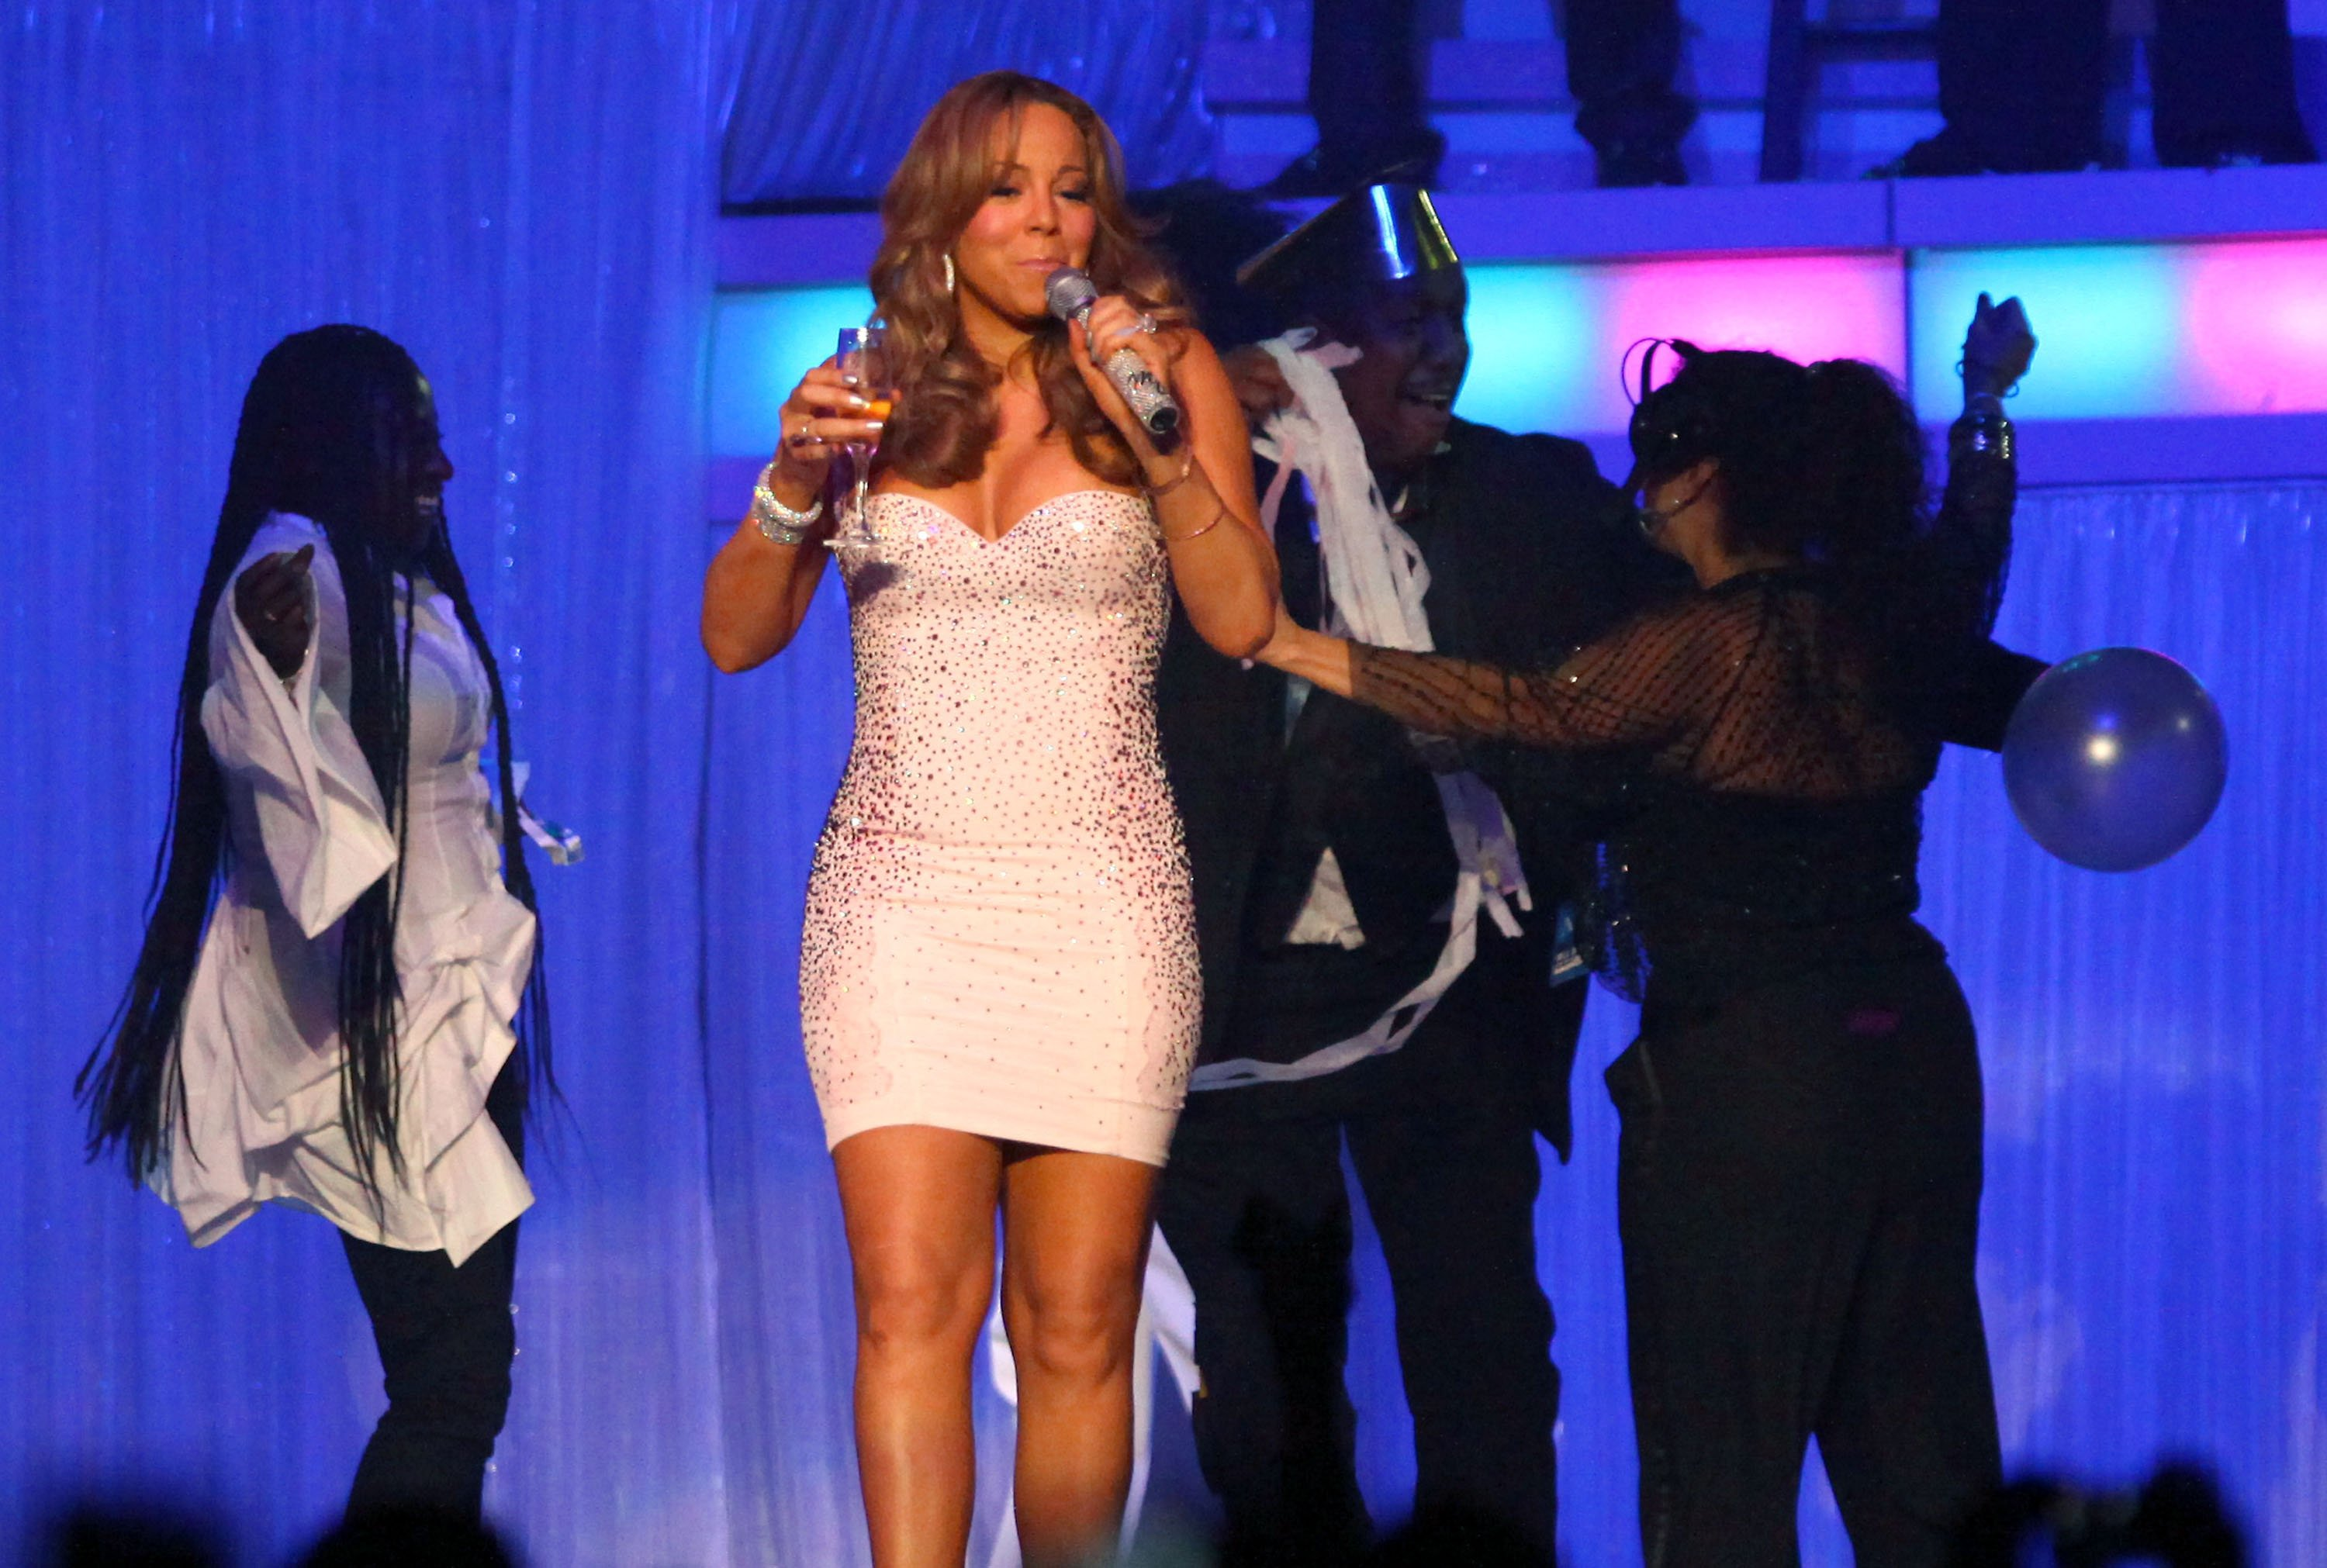 53642_Mariah_Carey_performs_at_Madison_Square_Garden_in_New_York_City-4_122_180lo.jpg